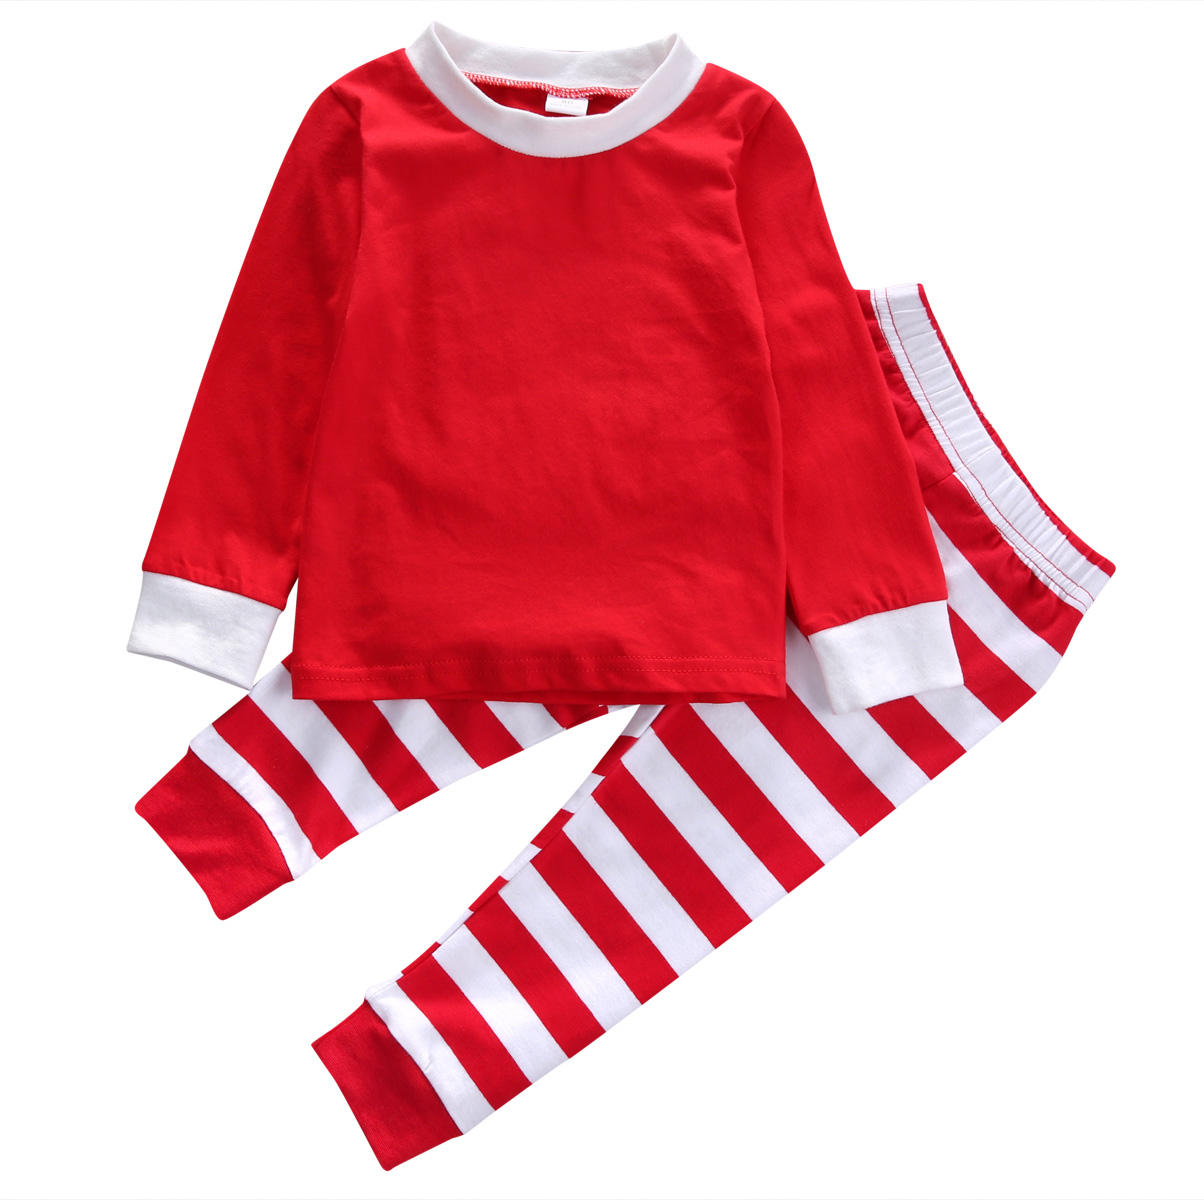 2pcs Toddler Kids Baby Boy Girls Striped Outfits Christmas